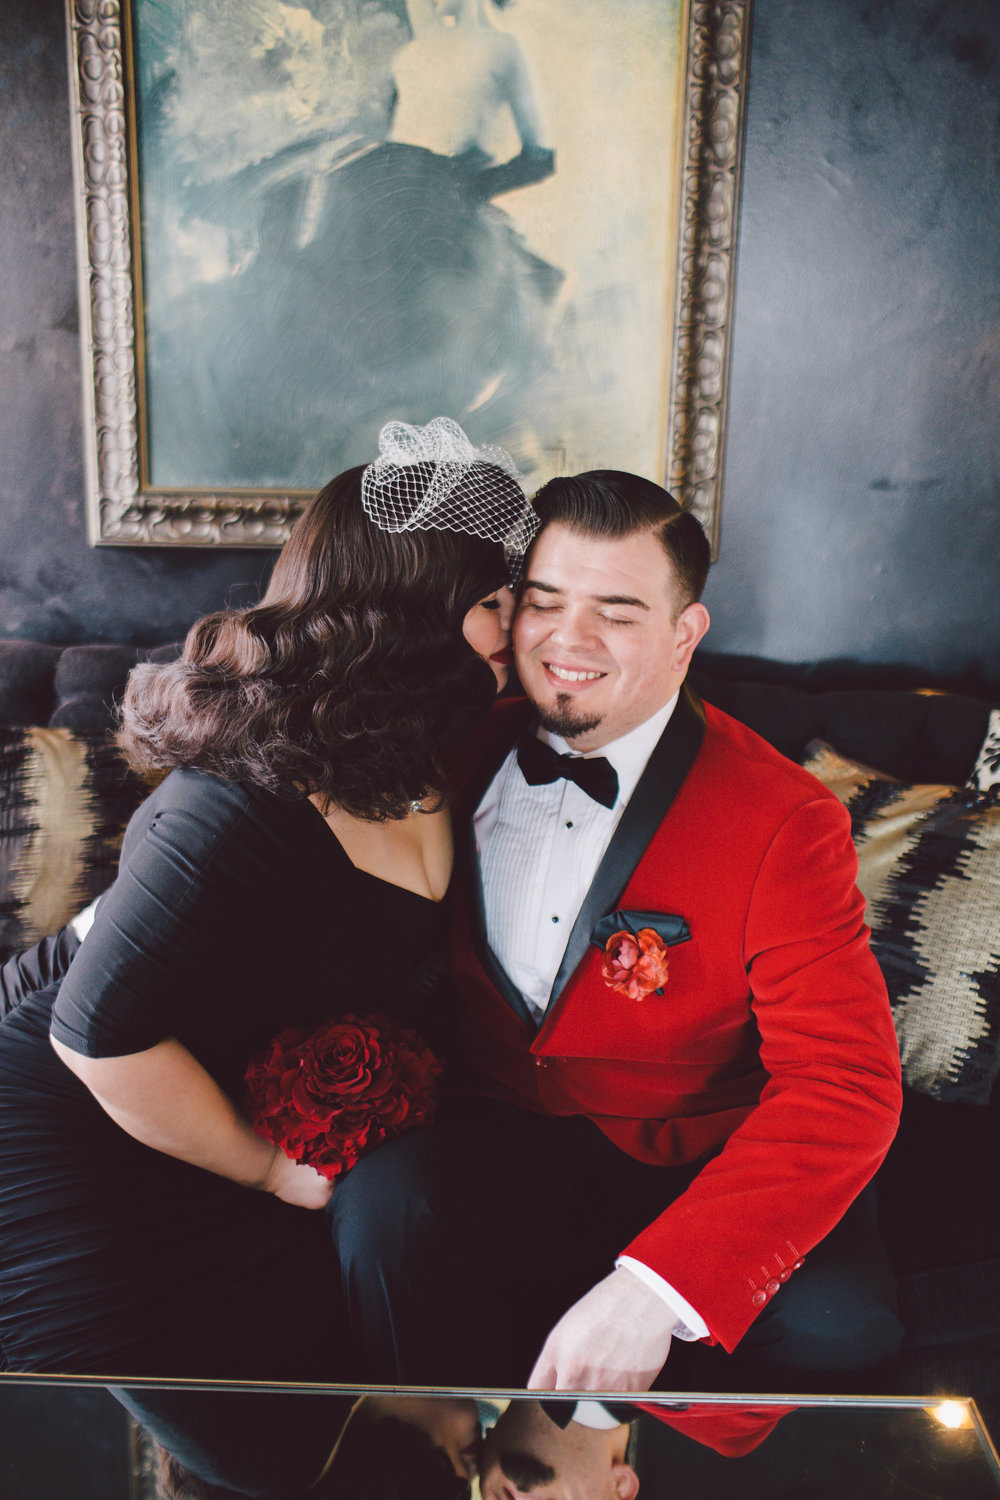 GLAMOROUS OLD HOLLYWOOD CALIFORNIA ELOPEMENT WITH THE BRIDE IN A BLACK WEDDING DRESS, Art & Soul Events, Evangeline Lane Photo, Culver Hotel